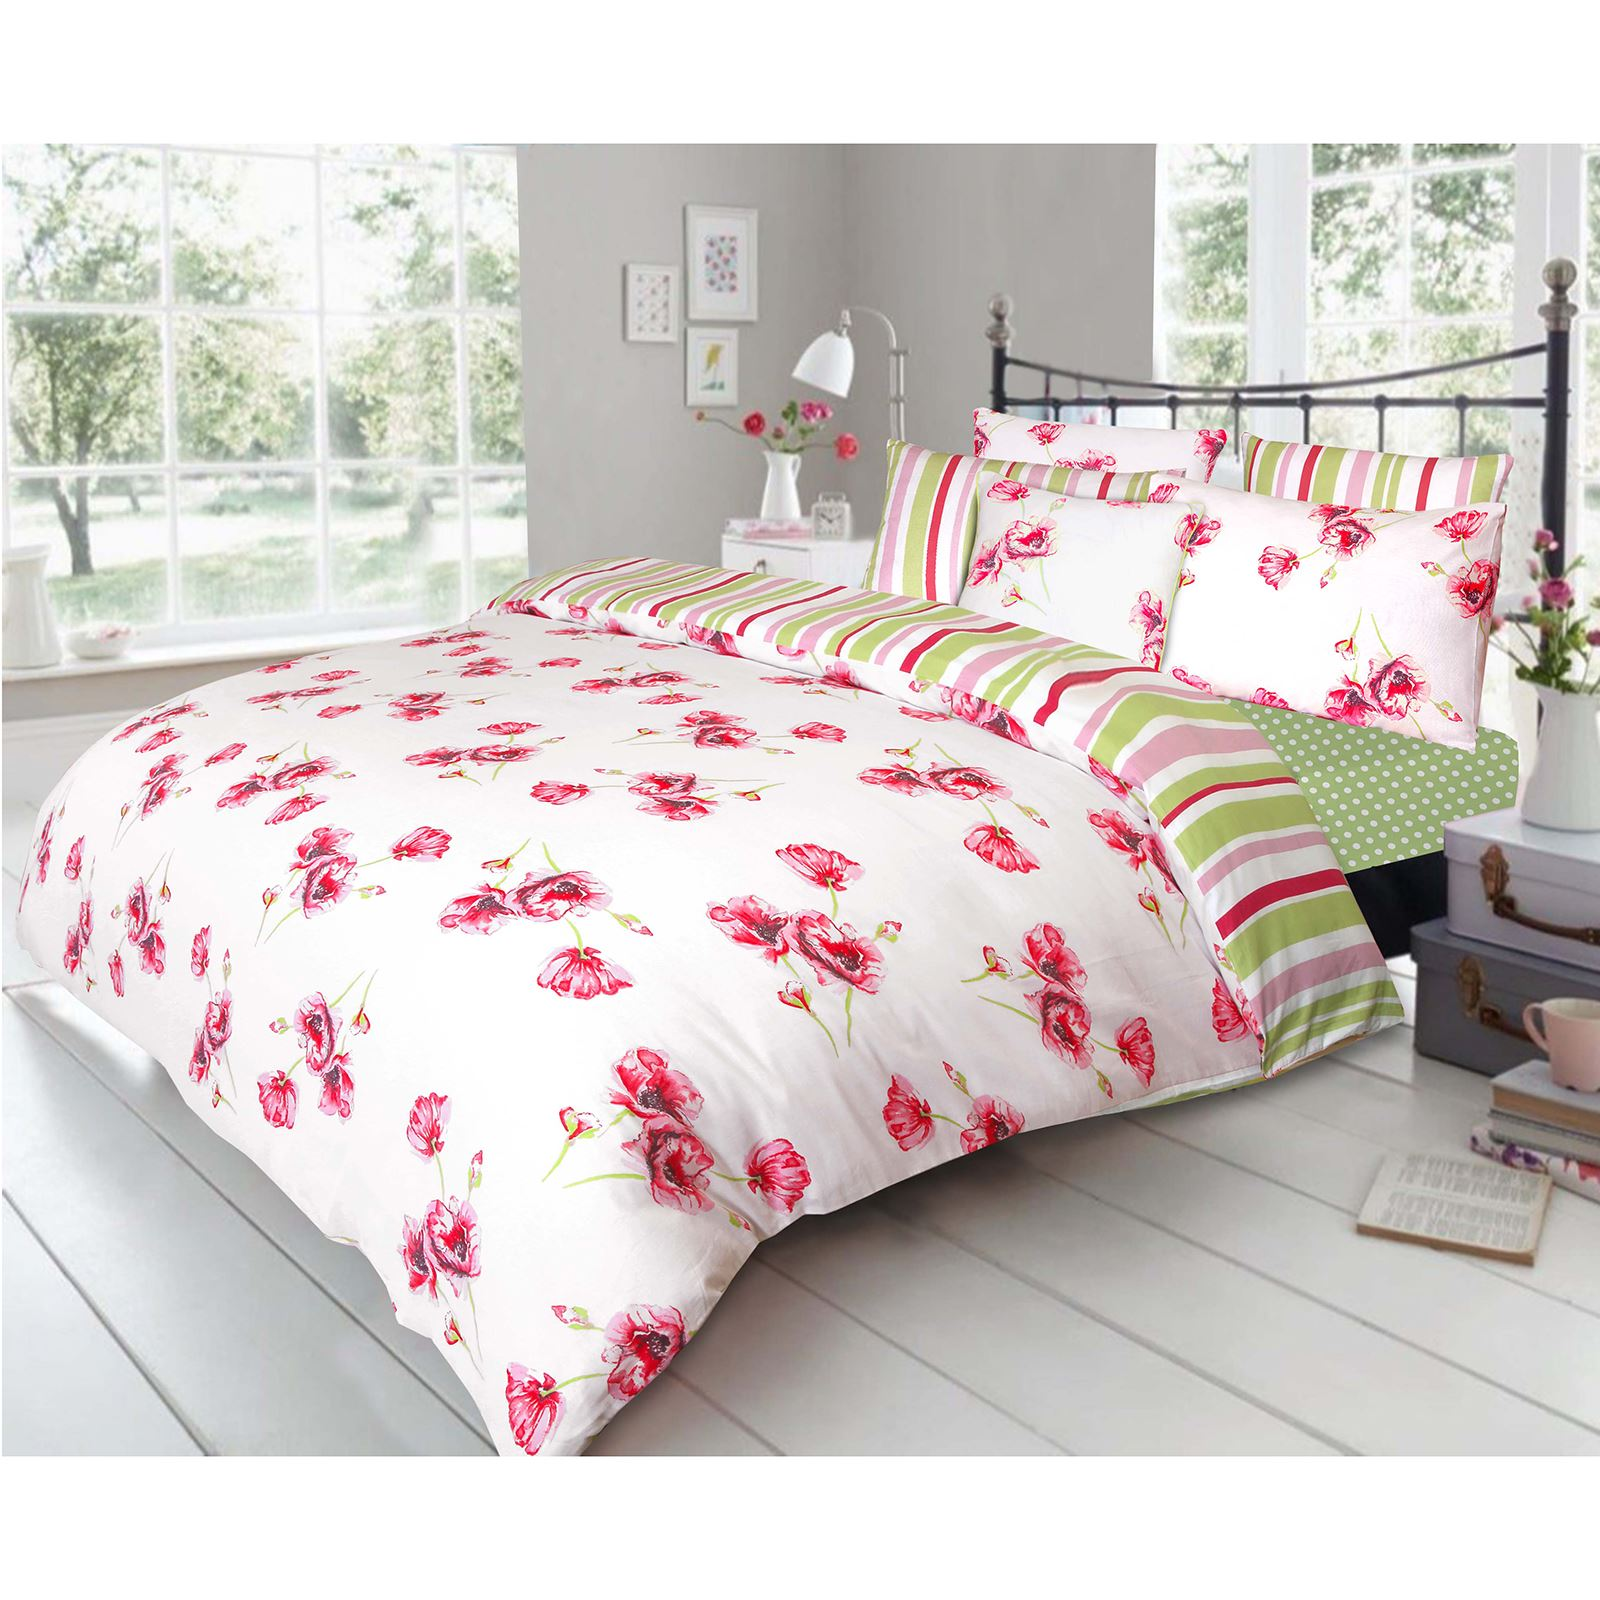 Jacob Diamond Elastic Embroidery Ruched 100/%Cotton Quilt Duvet Cover Bedding Set